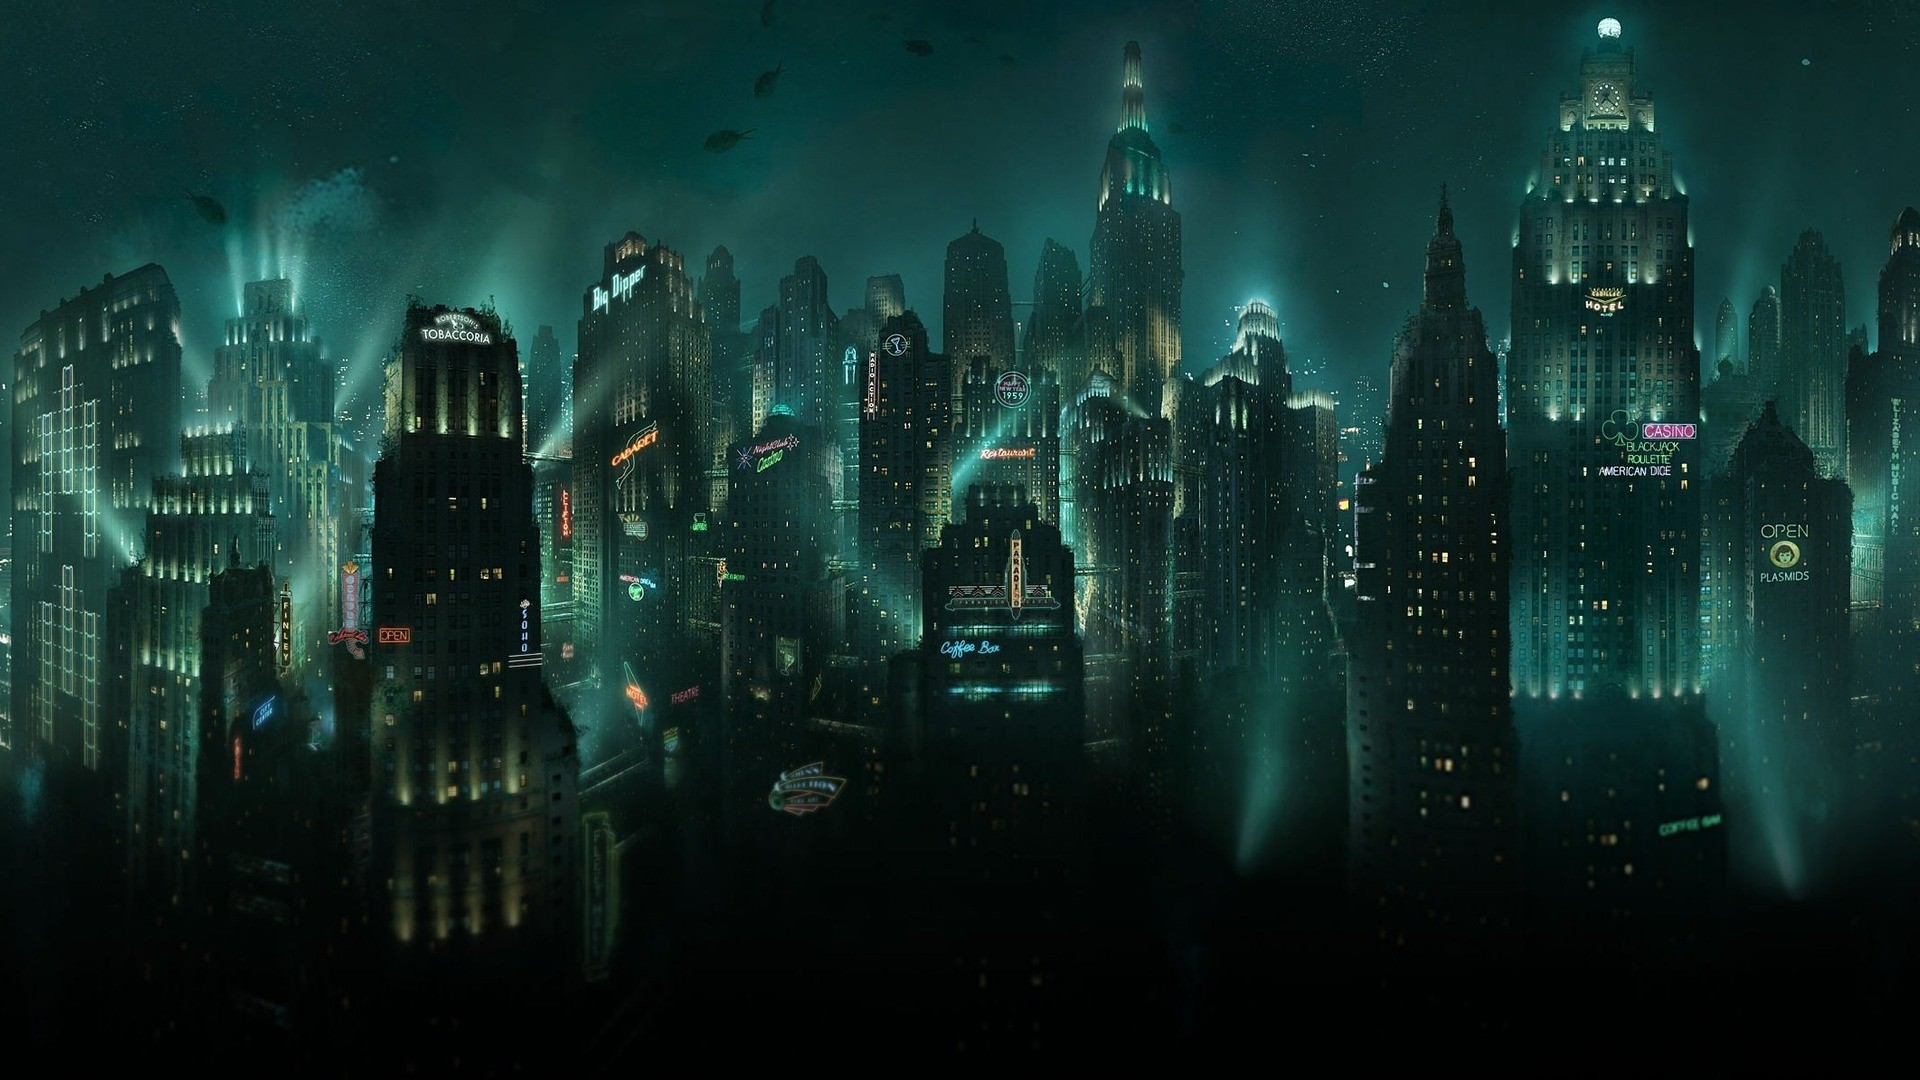 Sci Fi - City  Bioshock Night Wallpaper